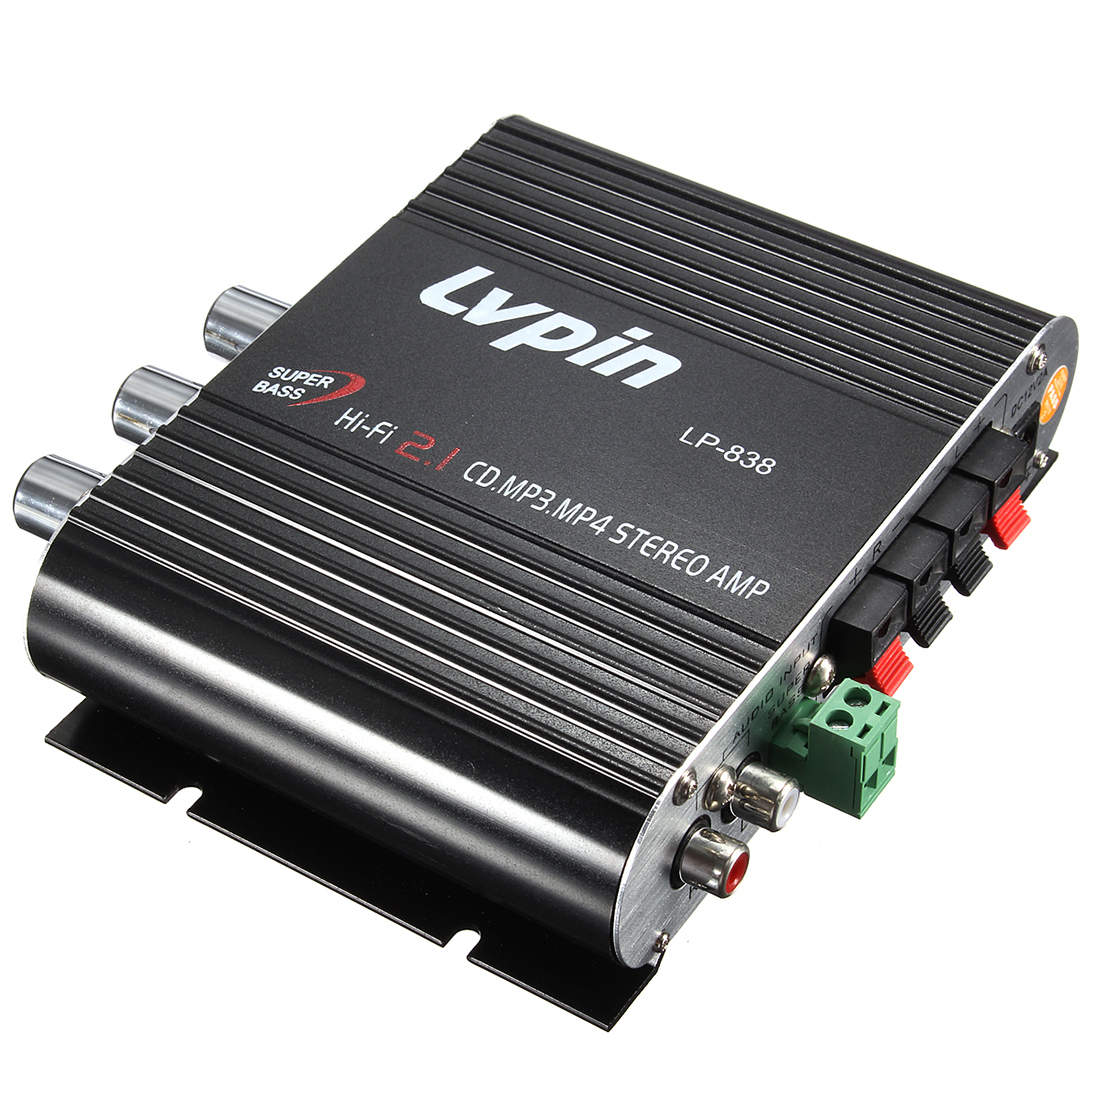 CES FOR LVPIN 12V 200W Mini Hi-Fi Stereo Amplifier MP3 Car Radio Channels 2 House Super Bass